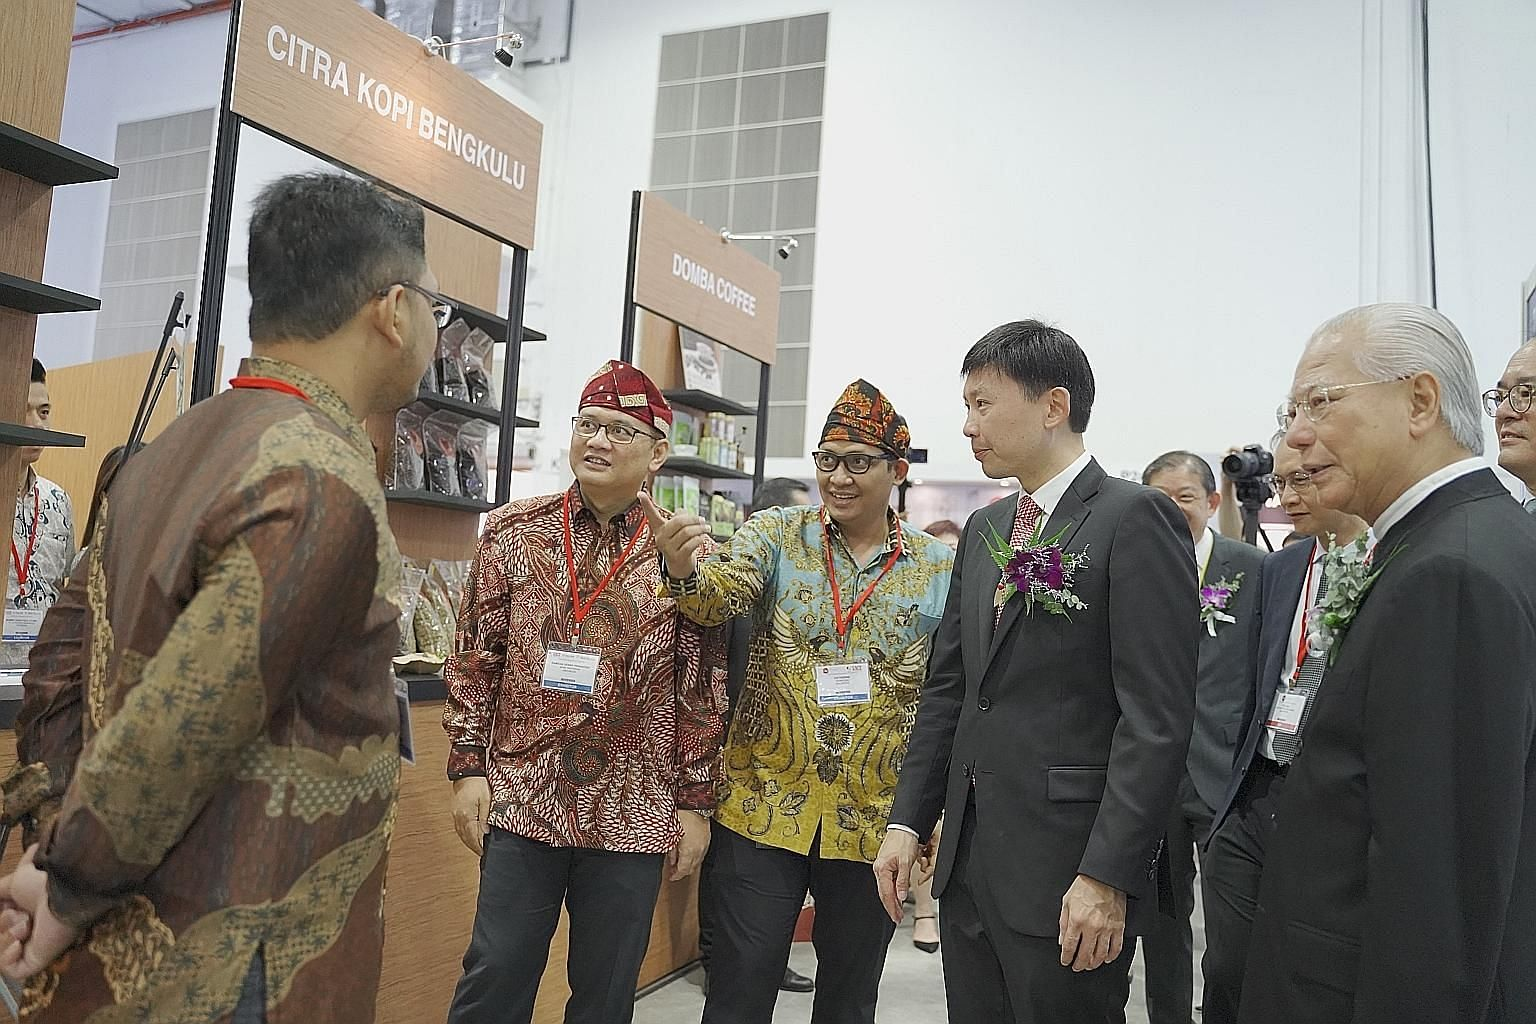 Mr Chee Hong Tat (second from right) visiting the Indonesia Coffee Pavilion at Cafe Asia 2019, held alongside the Restaurant Asia 2019 expo.